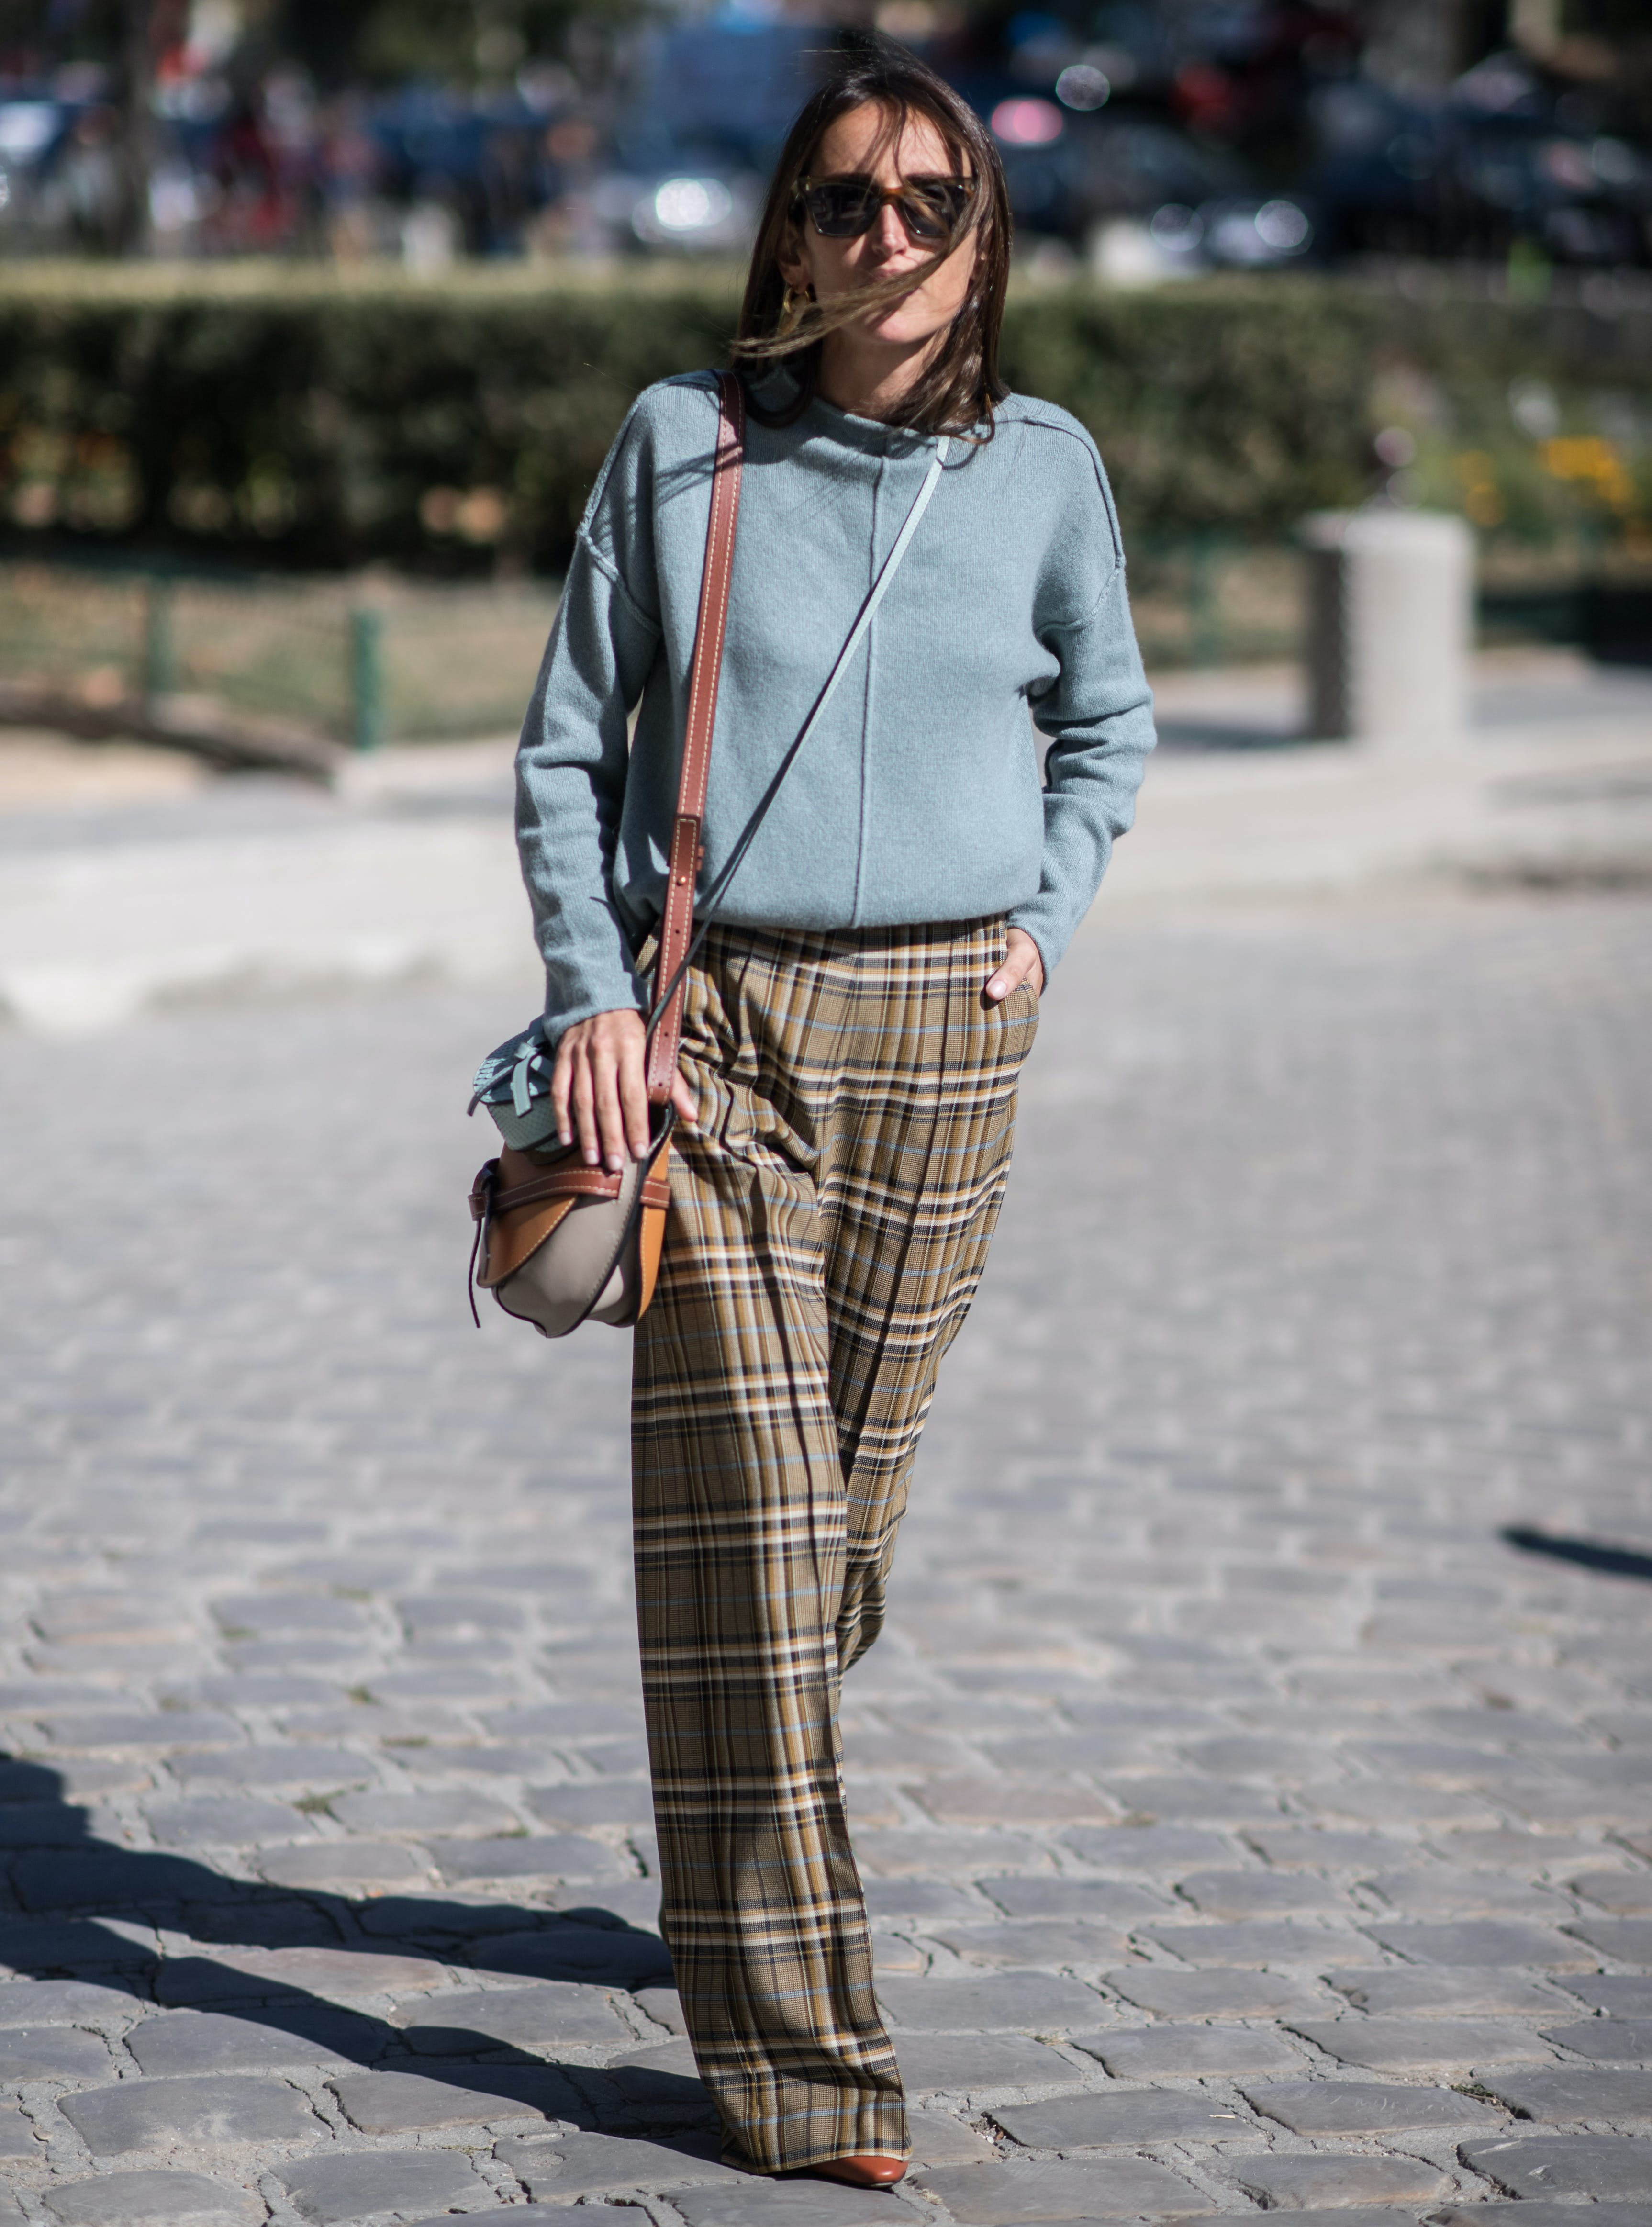 woman wearing a sweatshirt and plaid trousers